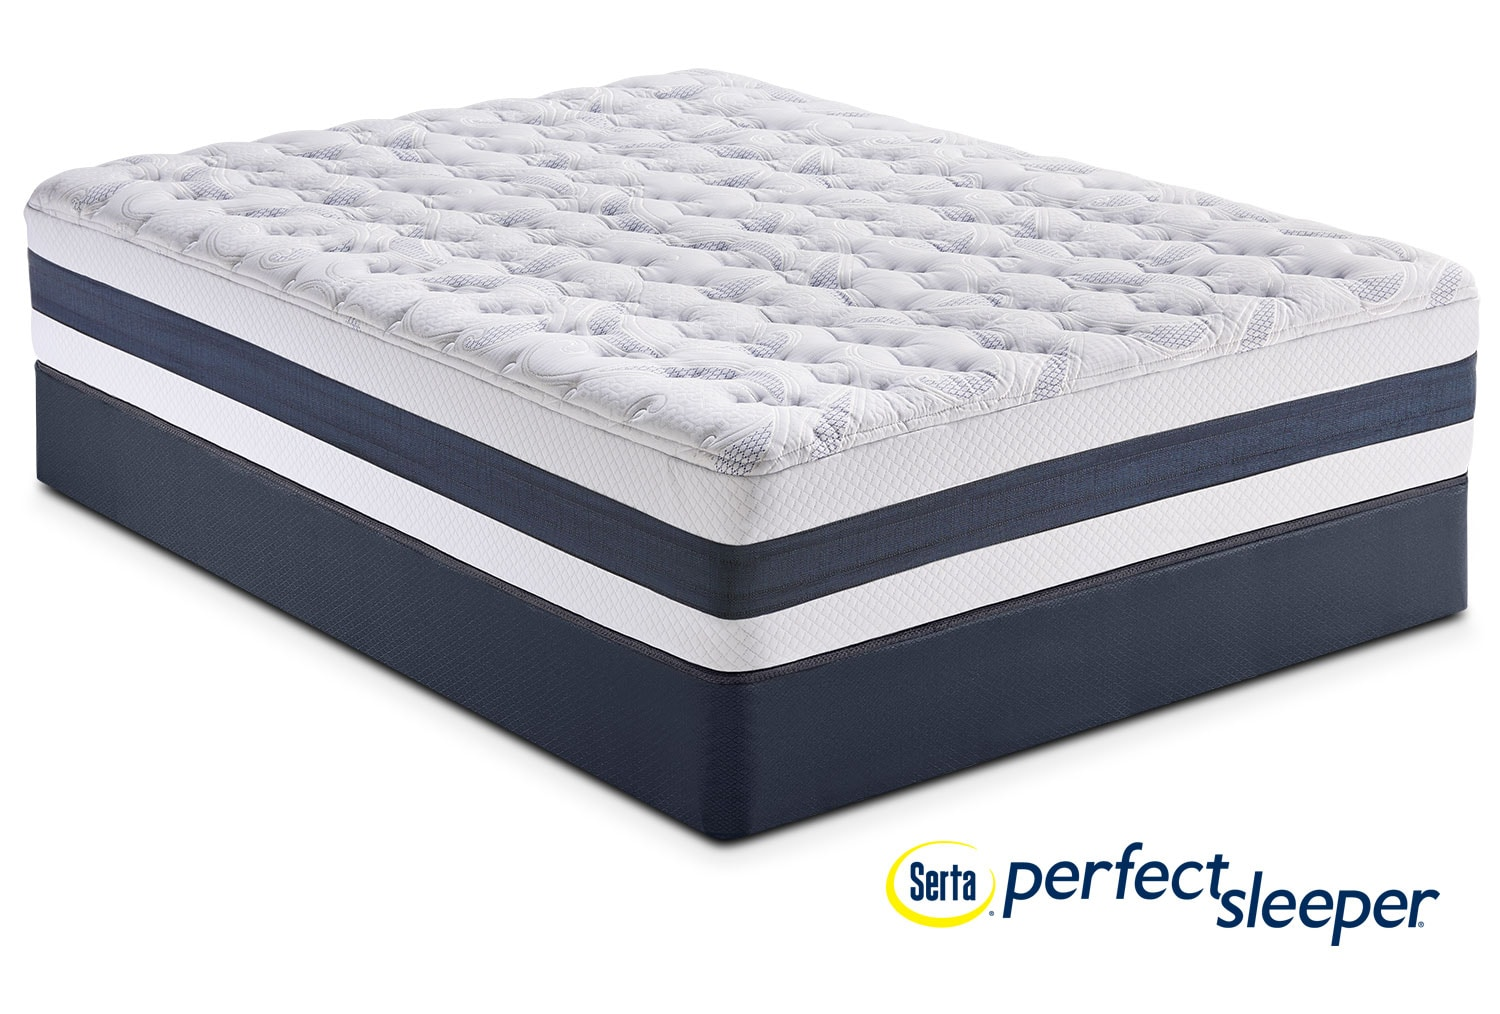 Mattresses and Bedding - Carson Ridge Queen Mattress and Foundation Set